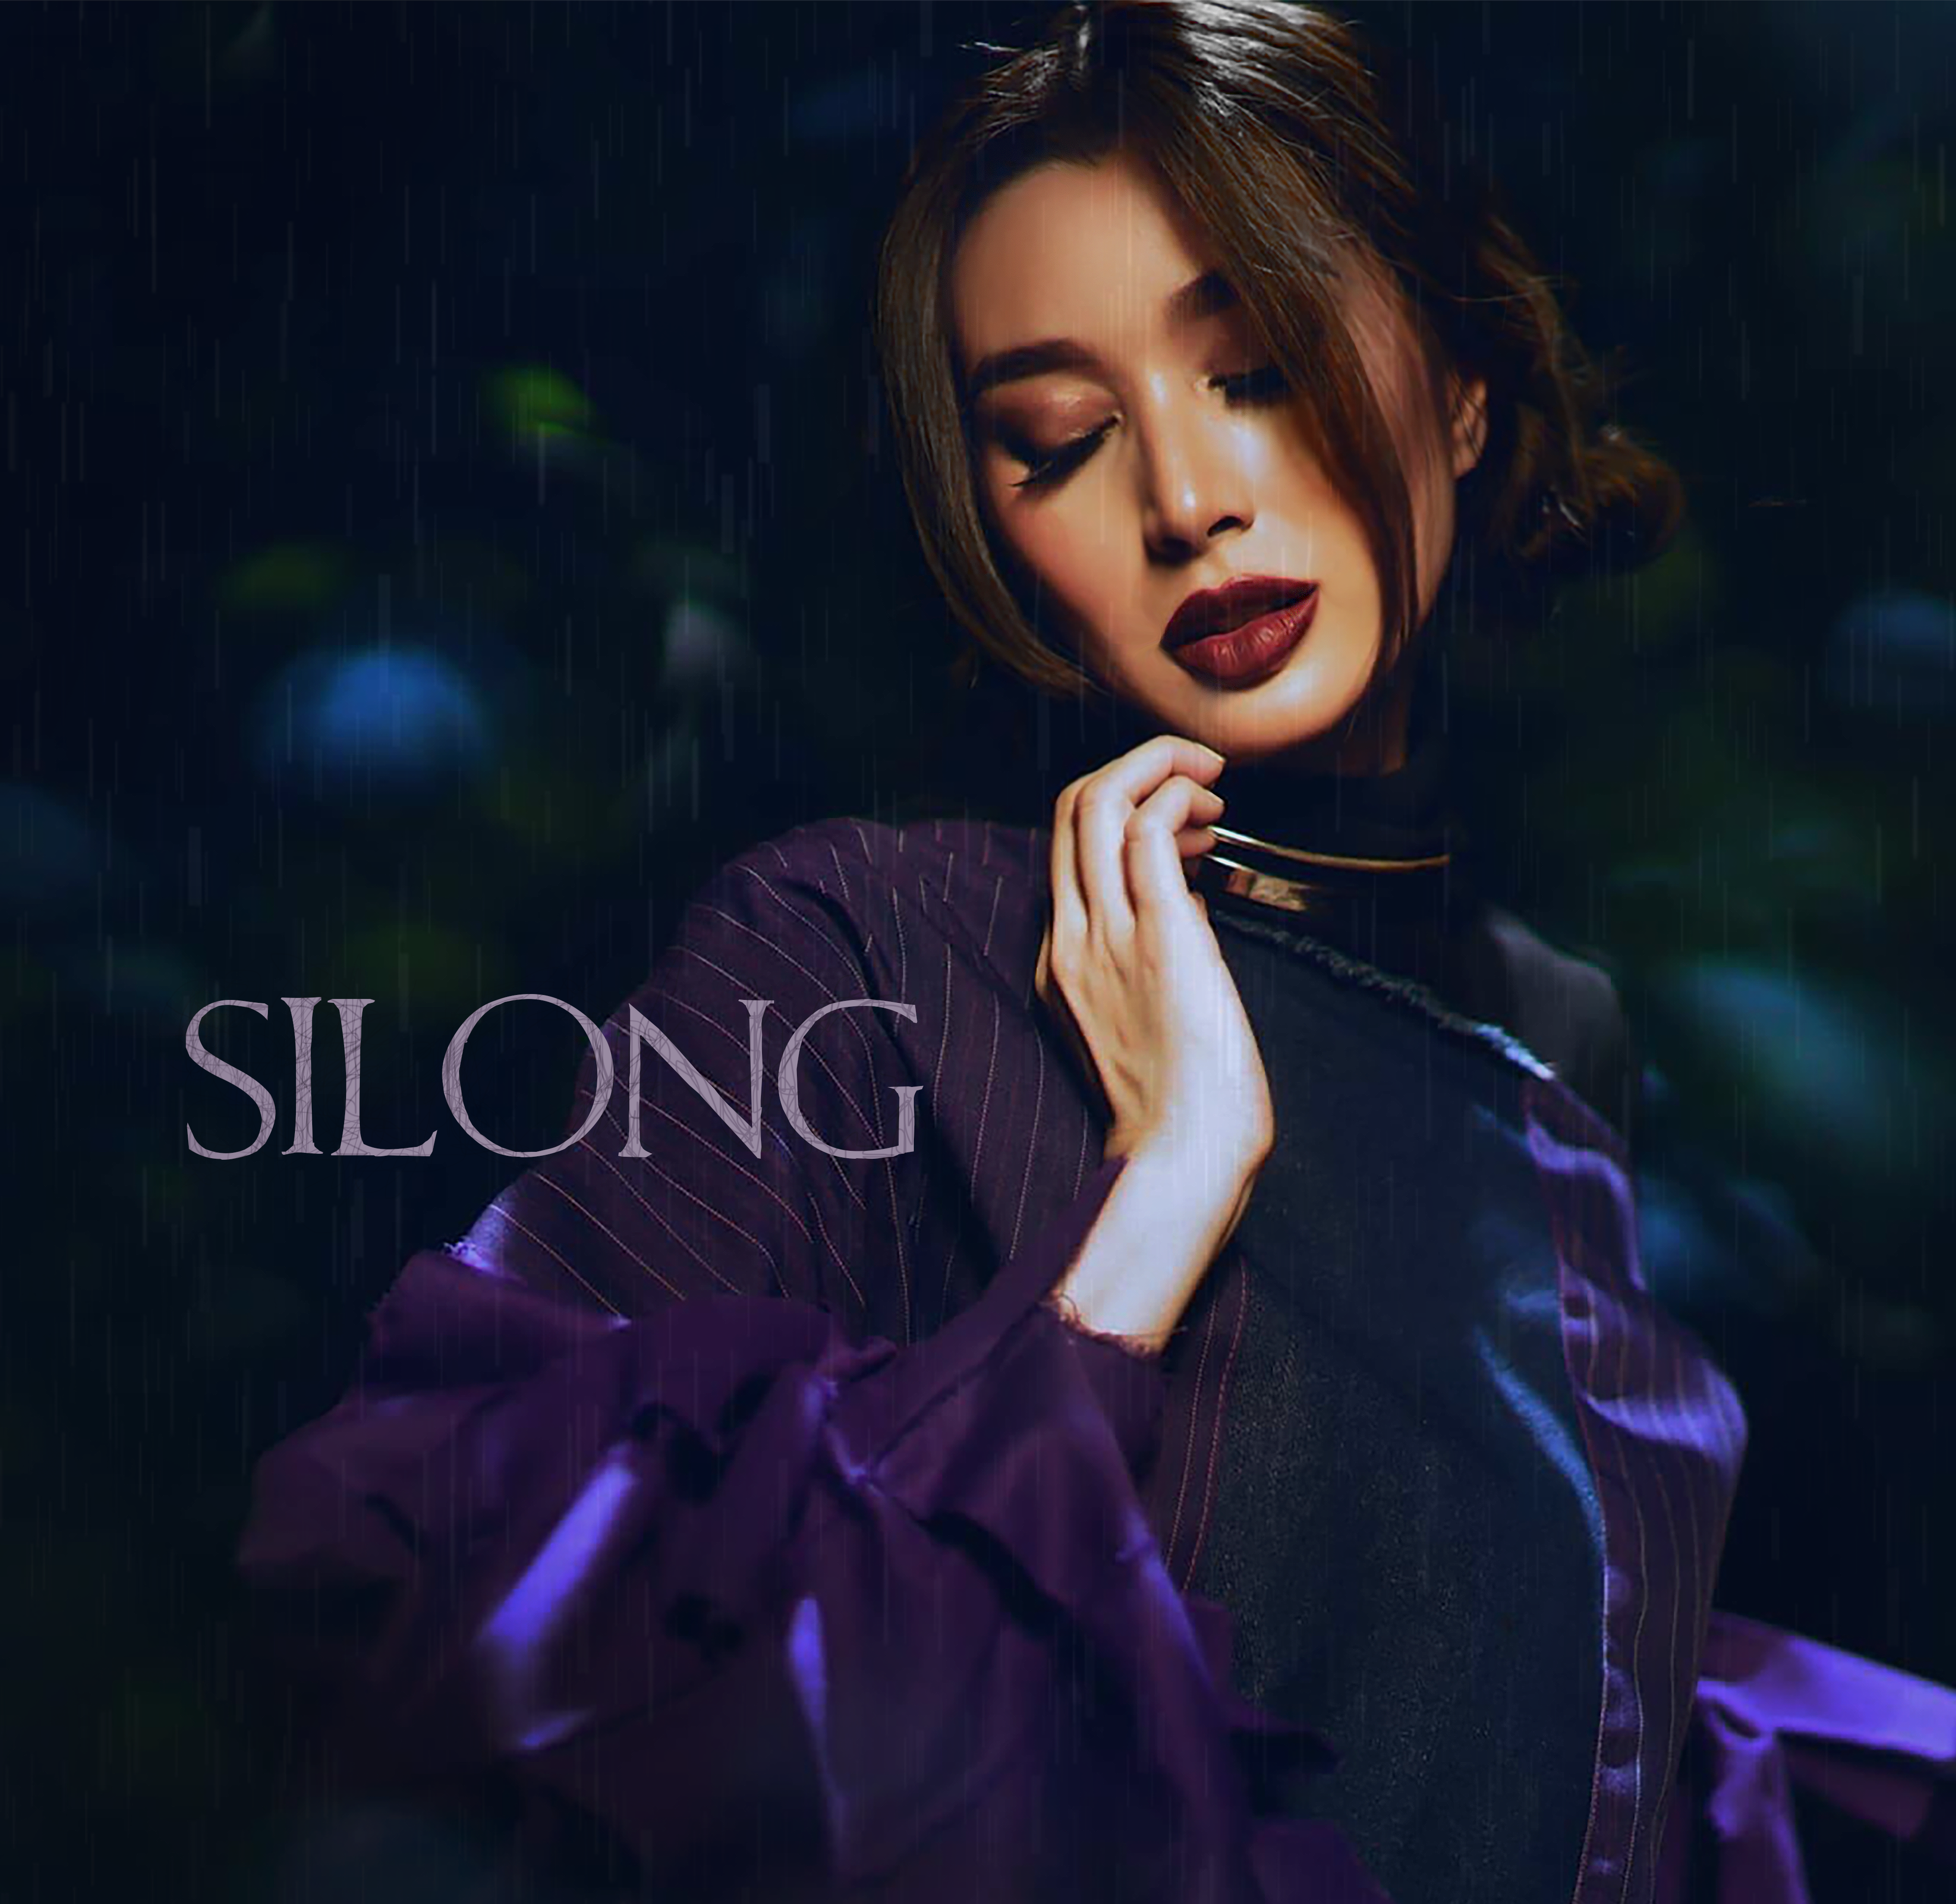 """Nicole Asensio shares details about her new single """"Silong"""""""